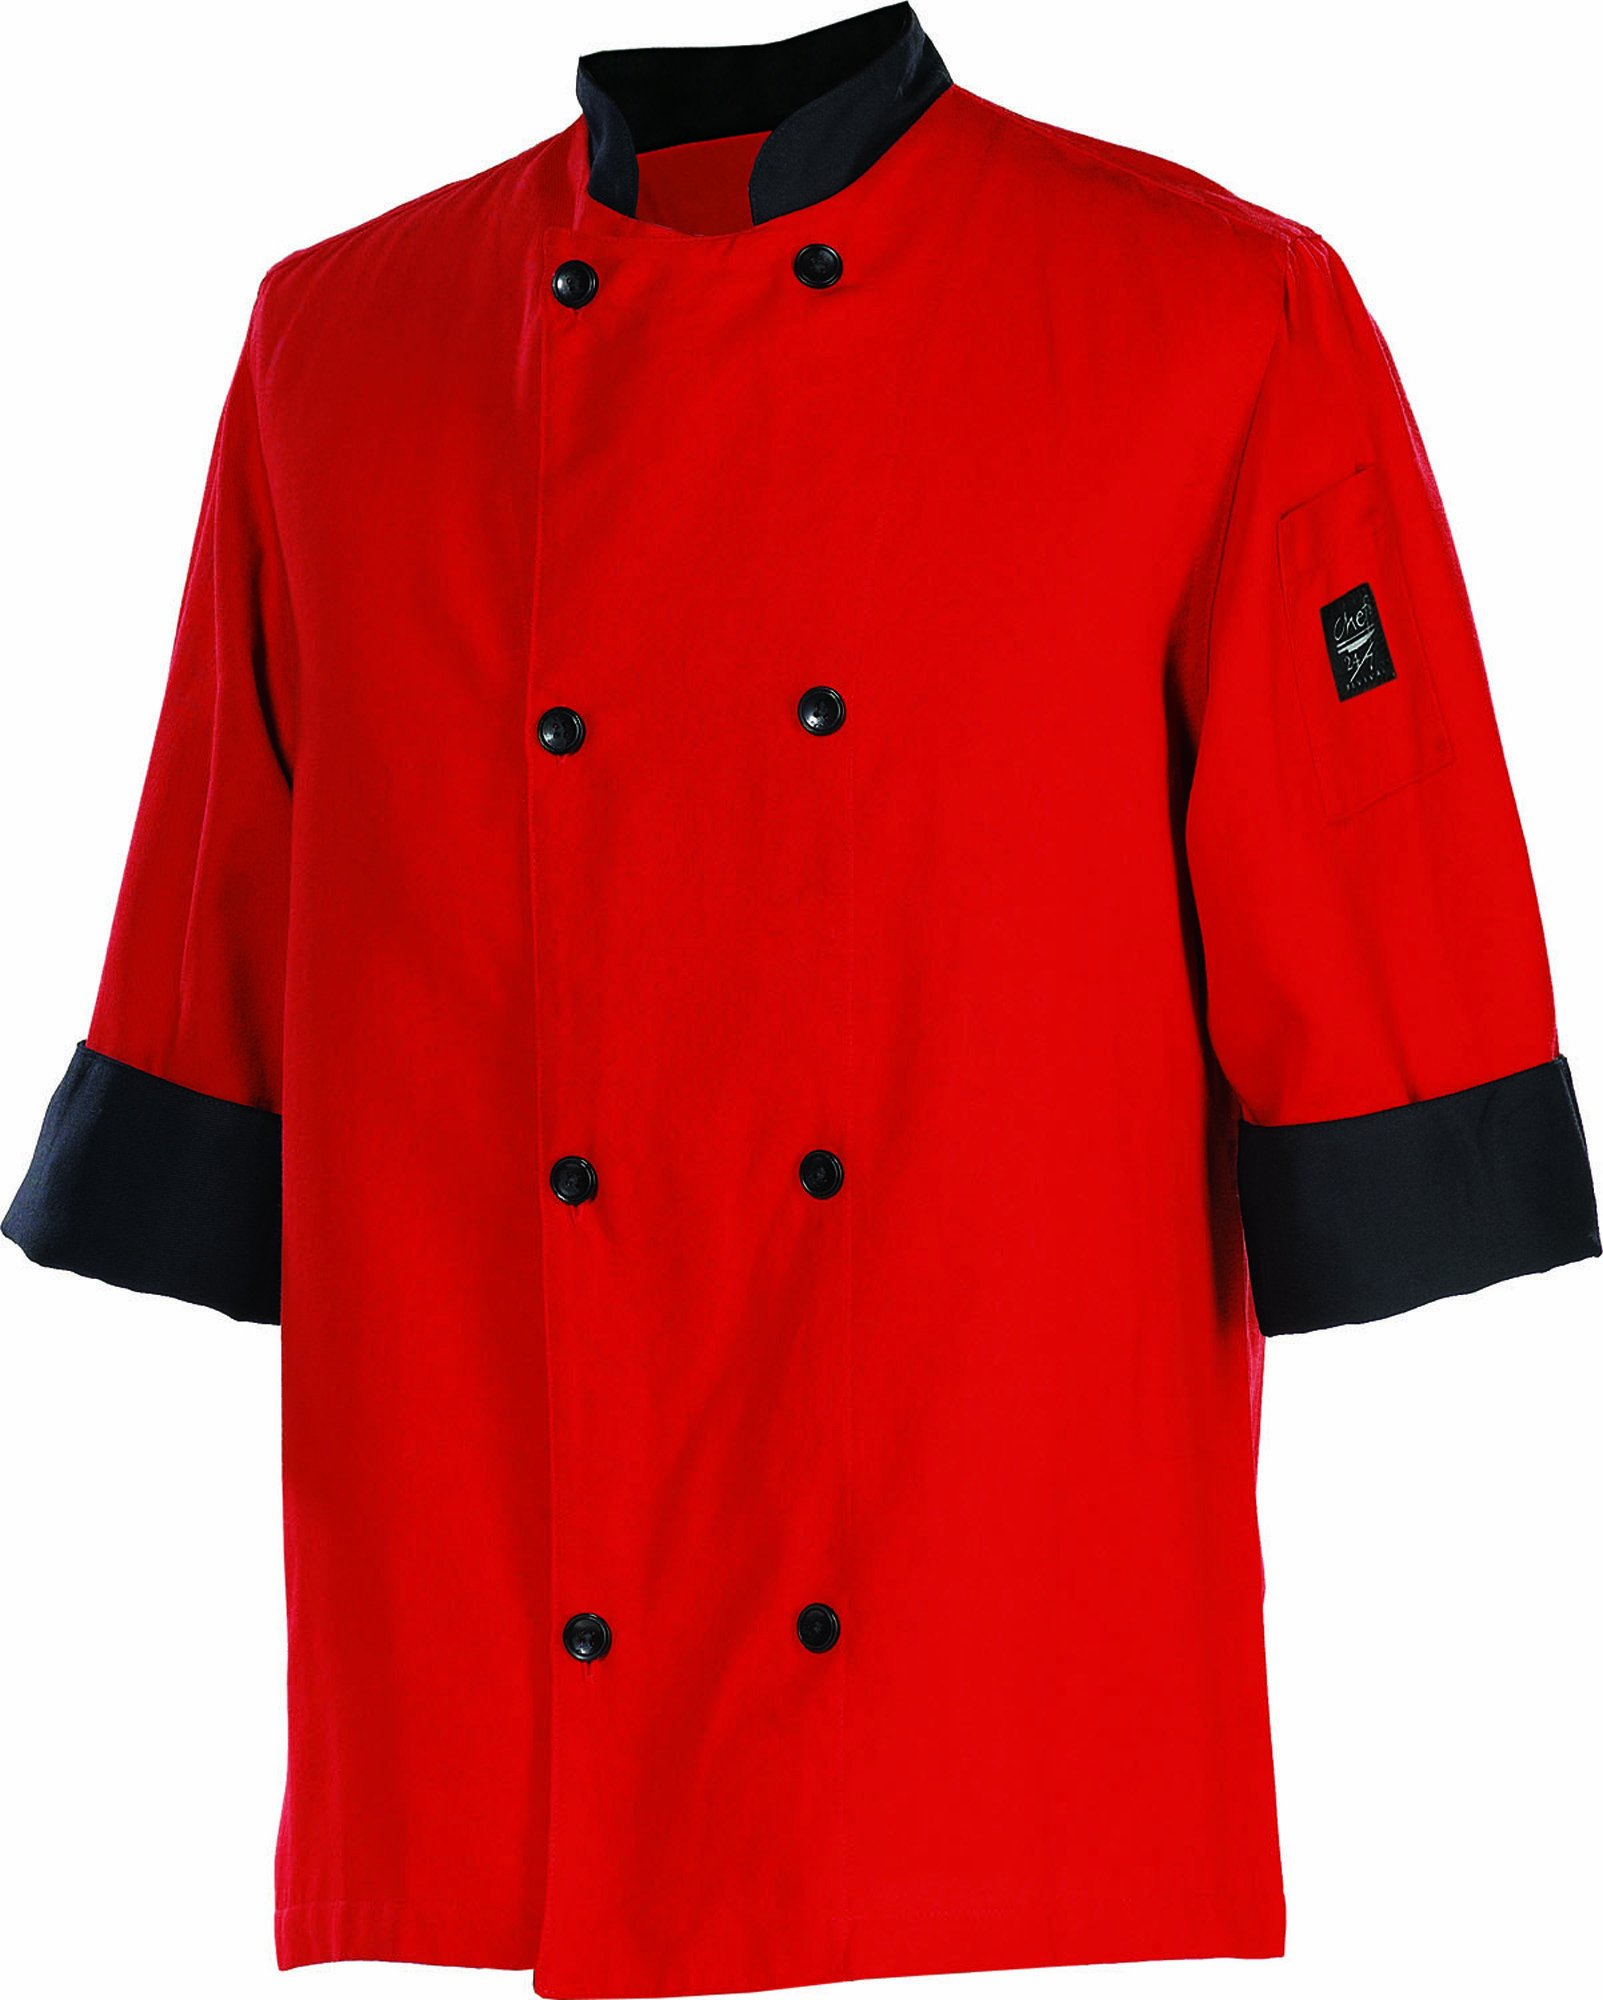 Chef Revival J134TM 24/7 Poly Cotton 3/4 Sleeve Fresh Chef Jacket with Black Trim and Flat Black Button, Medium, Tomato Red